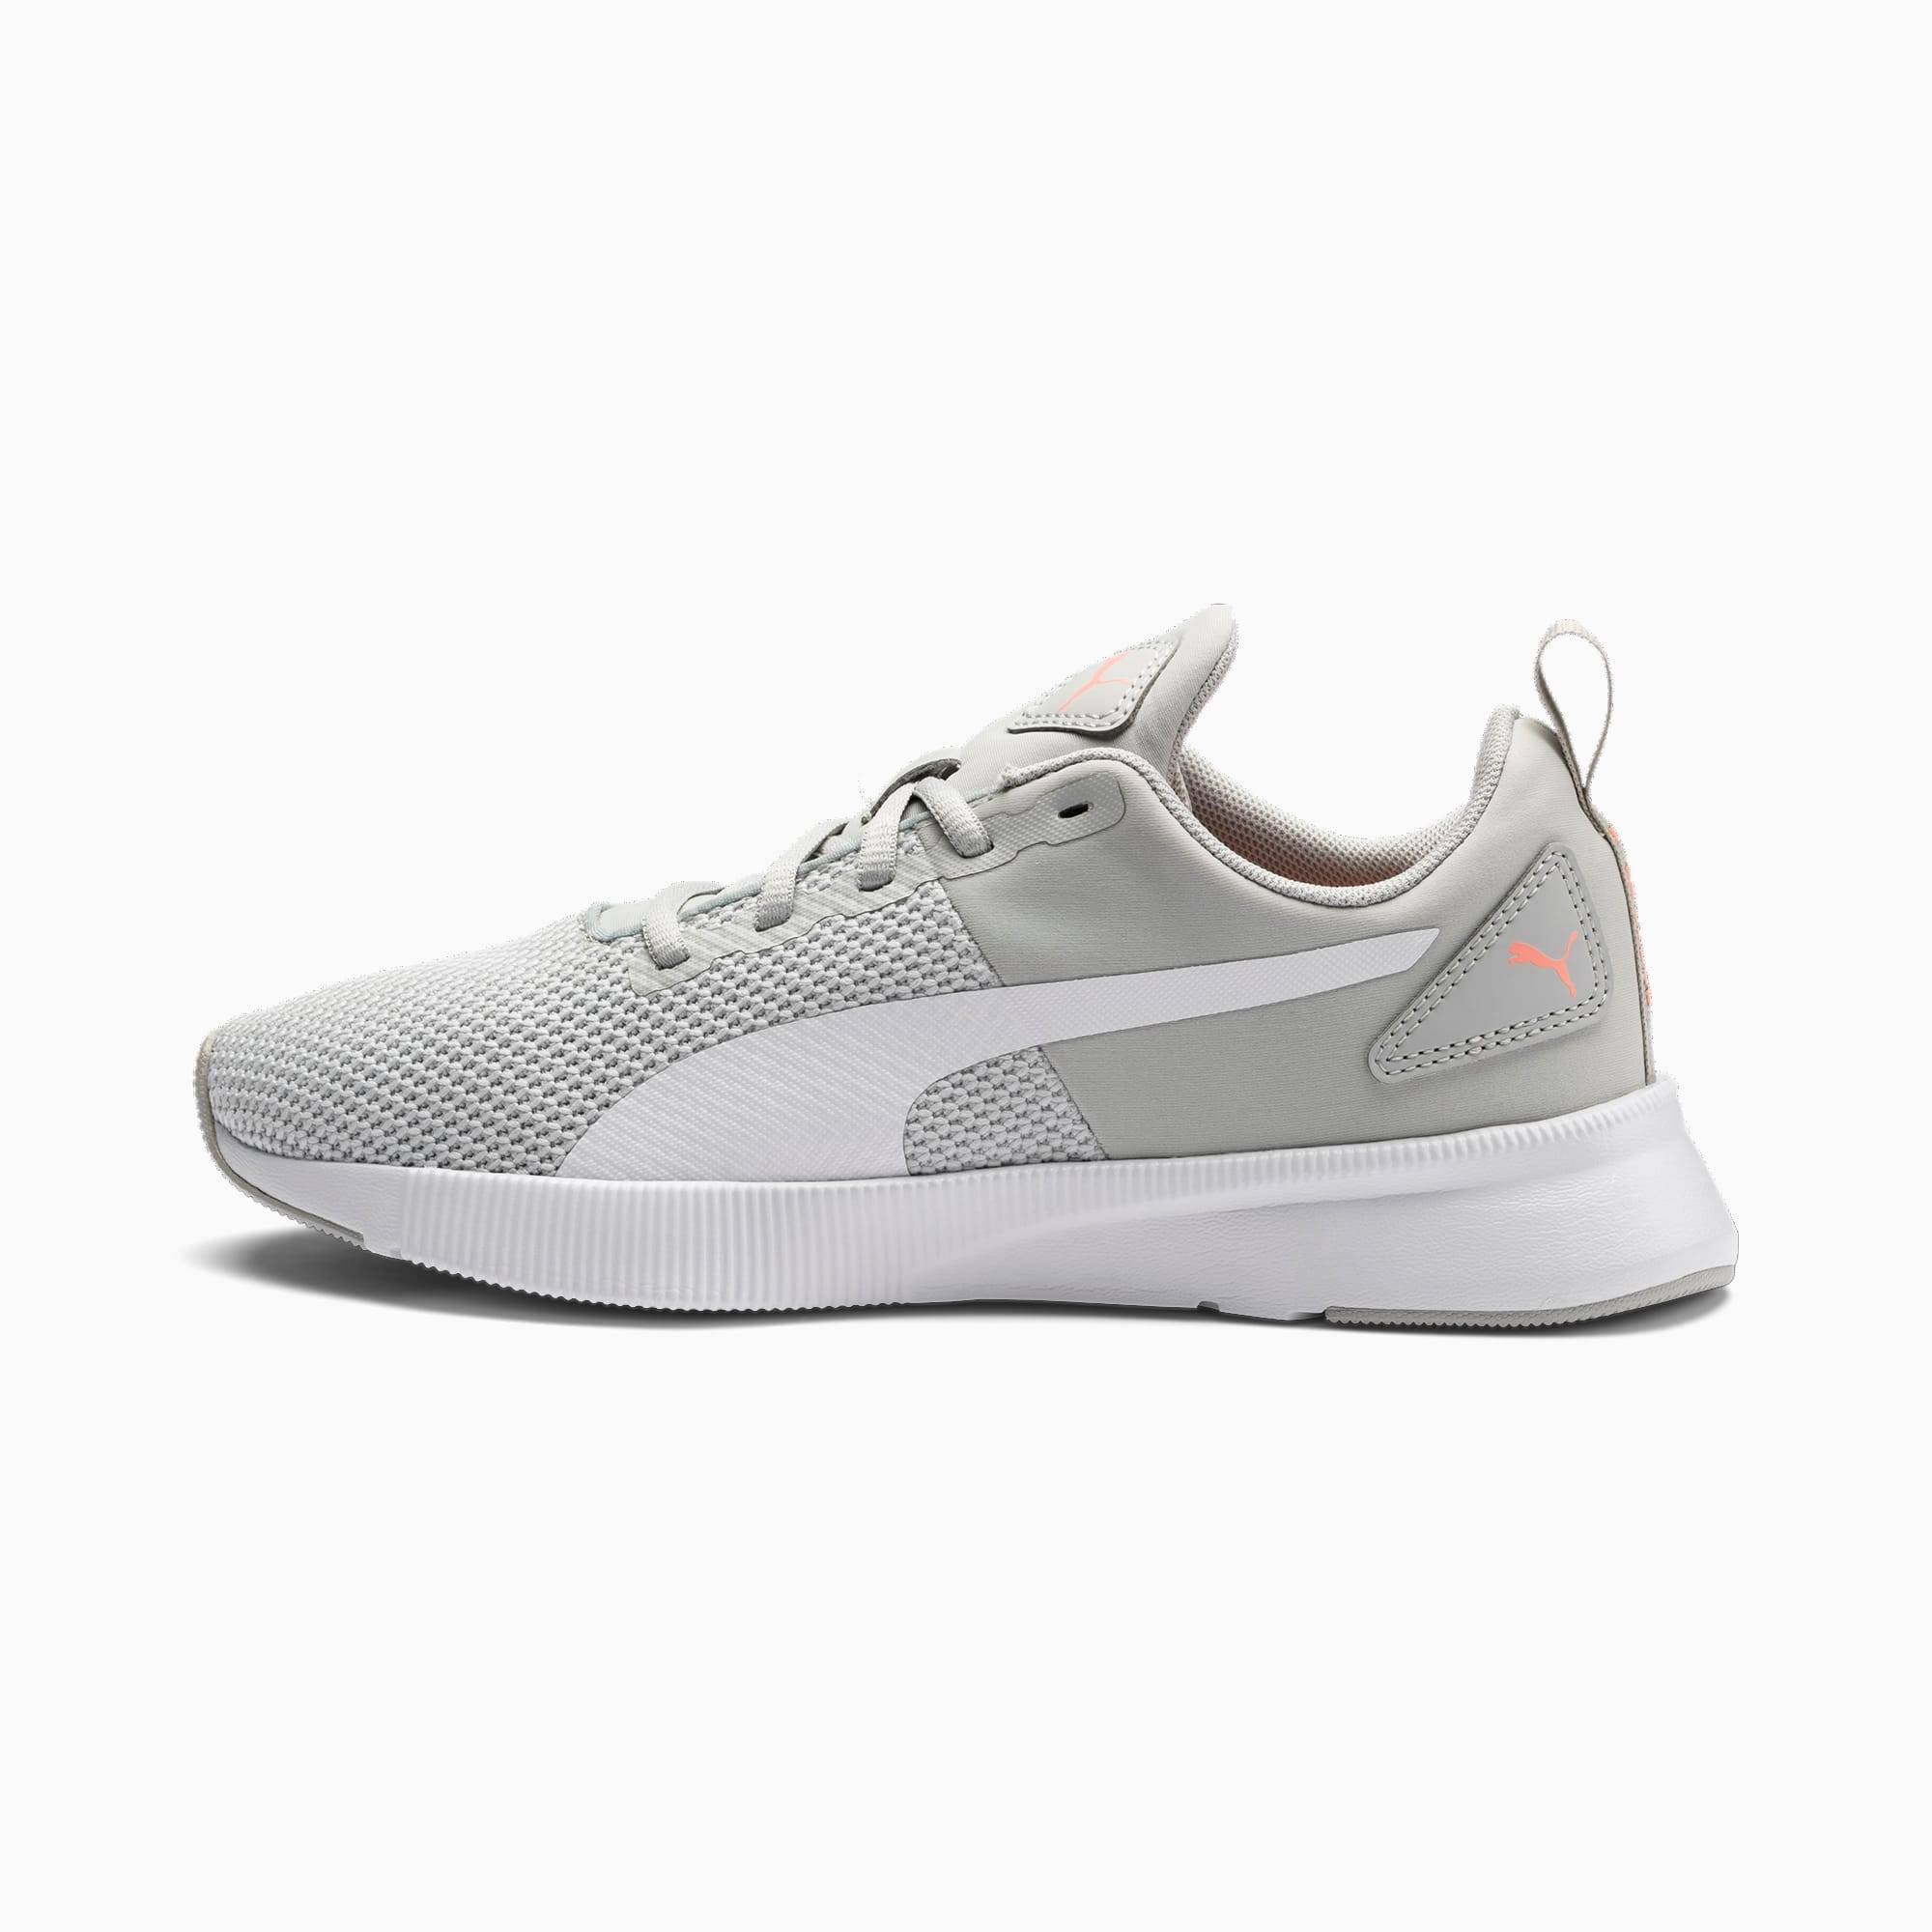 PUMA Chaussure de course Flyer Runner, Blanc/Rose/Gris, Taille 48.5, Chaussures